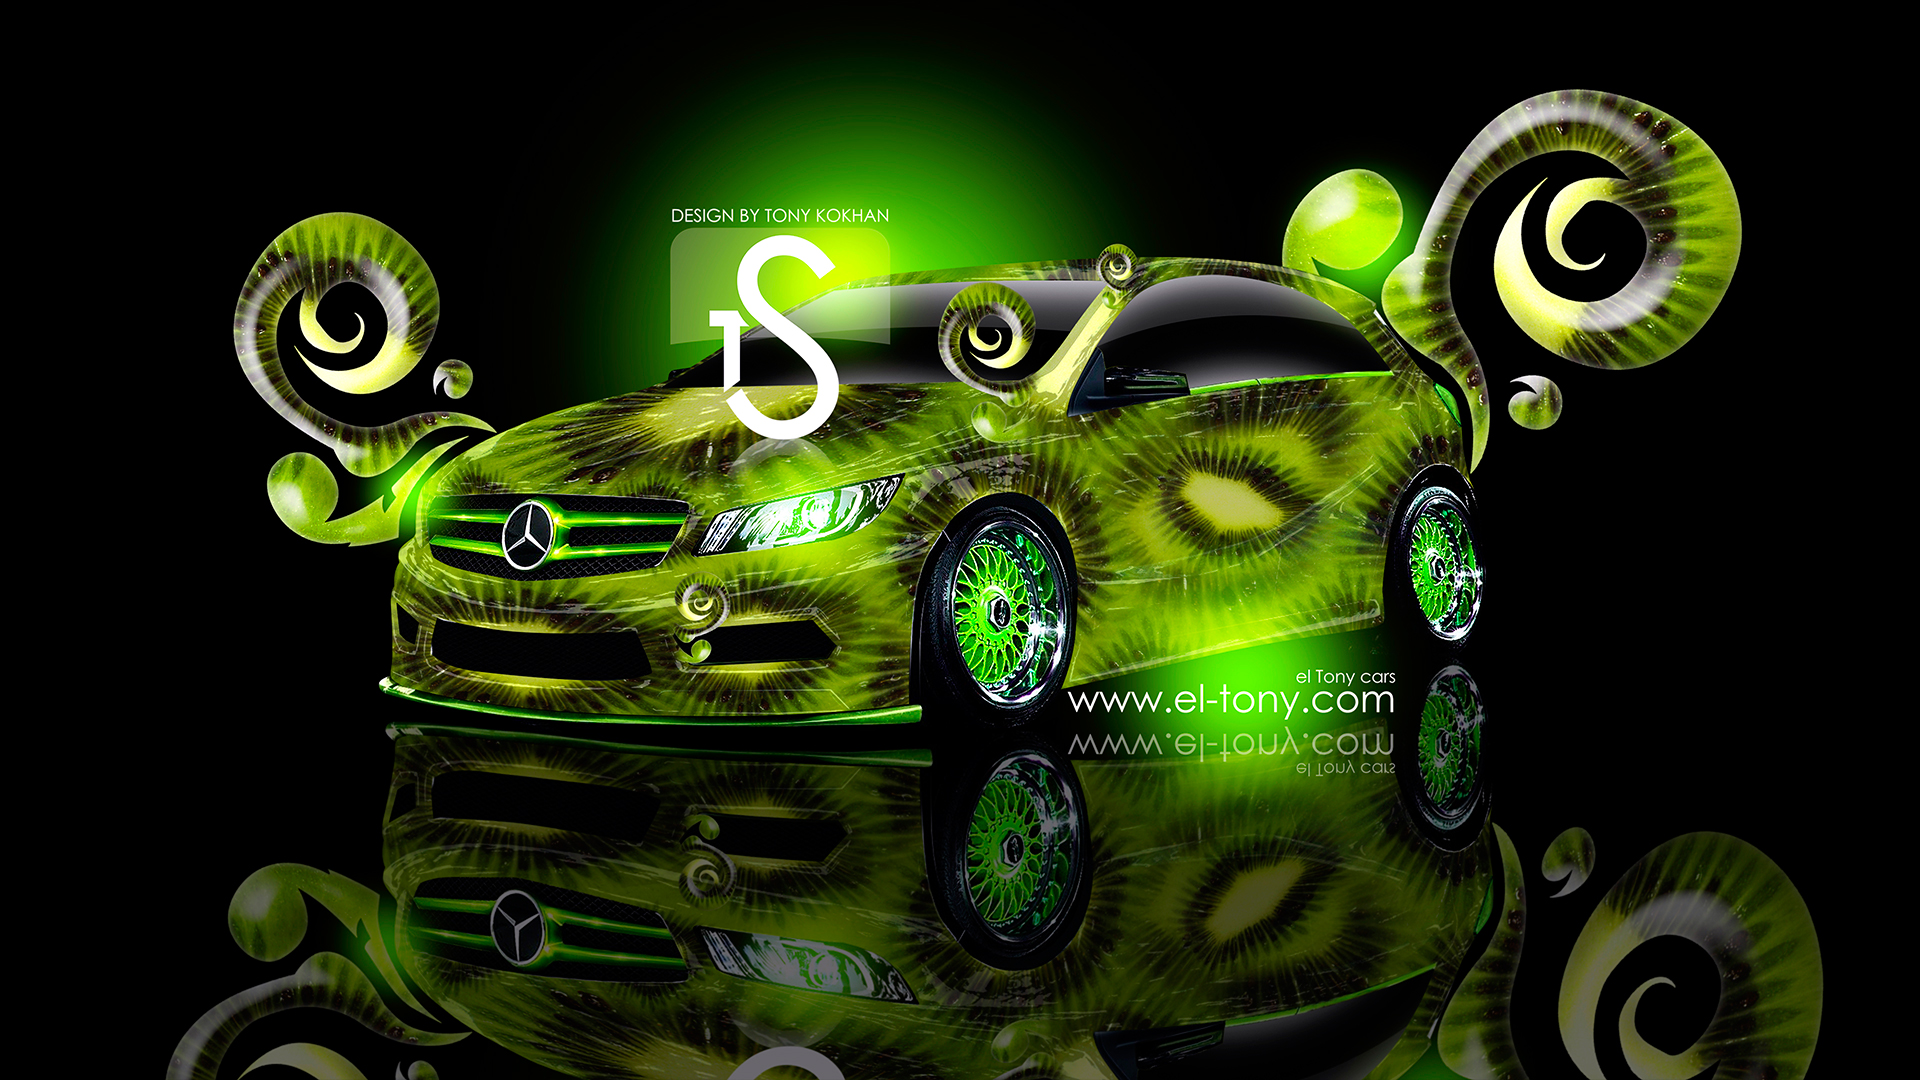 Superbe Merscedes Kiwi Car 2013 HD Wallpapers Design By  ...